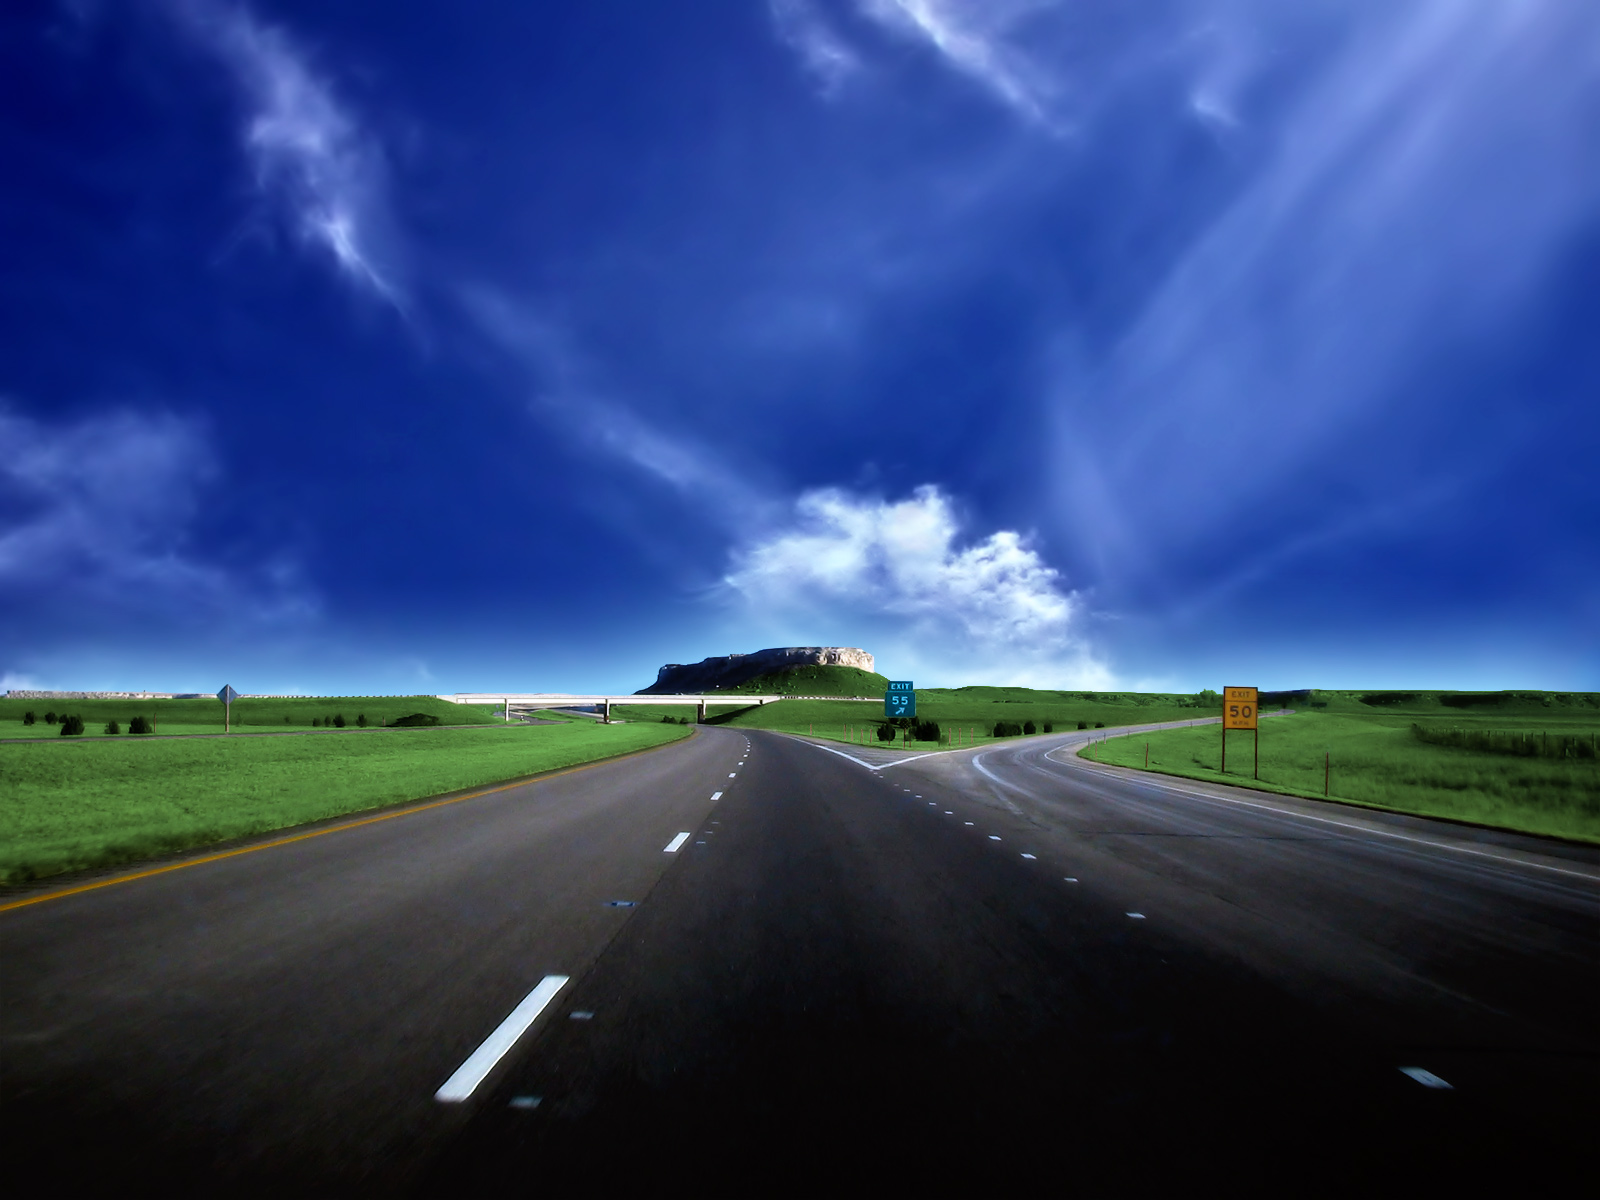 roads wallpapers HD 1600x1200 Hd desktop backgrounds wallpapers